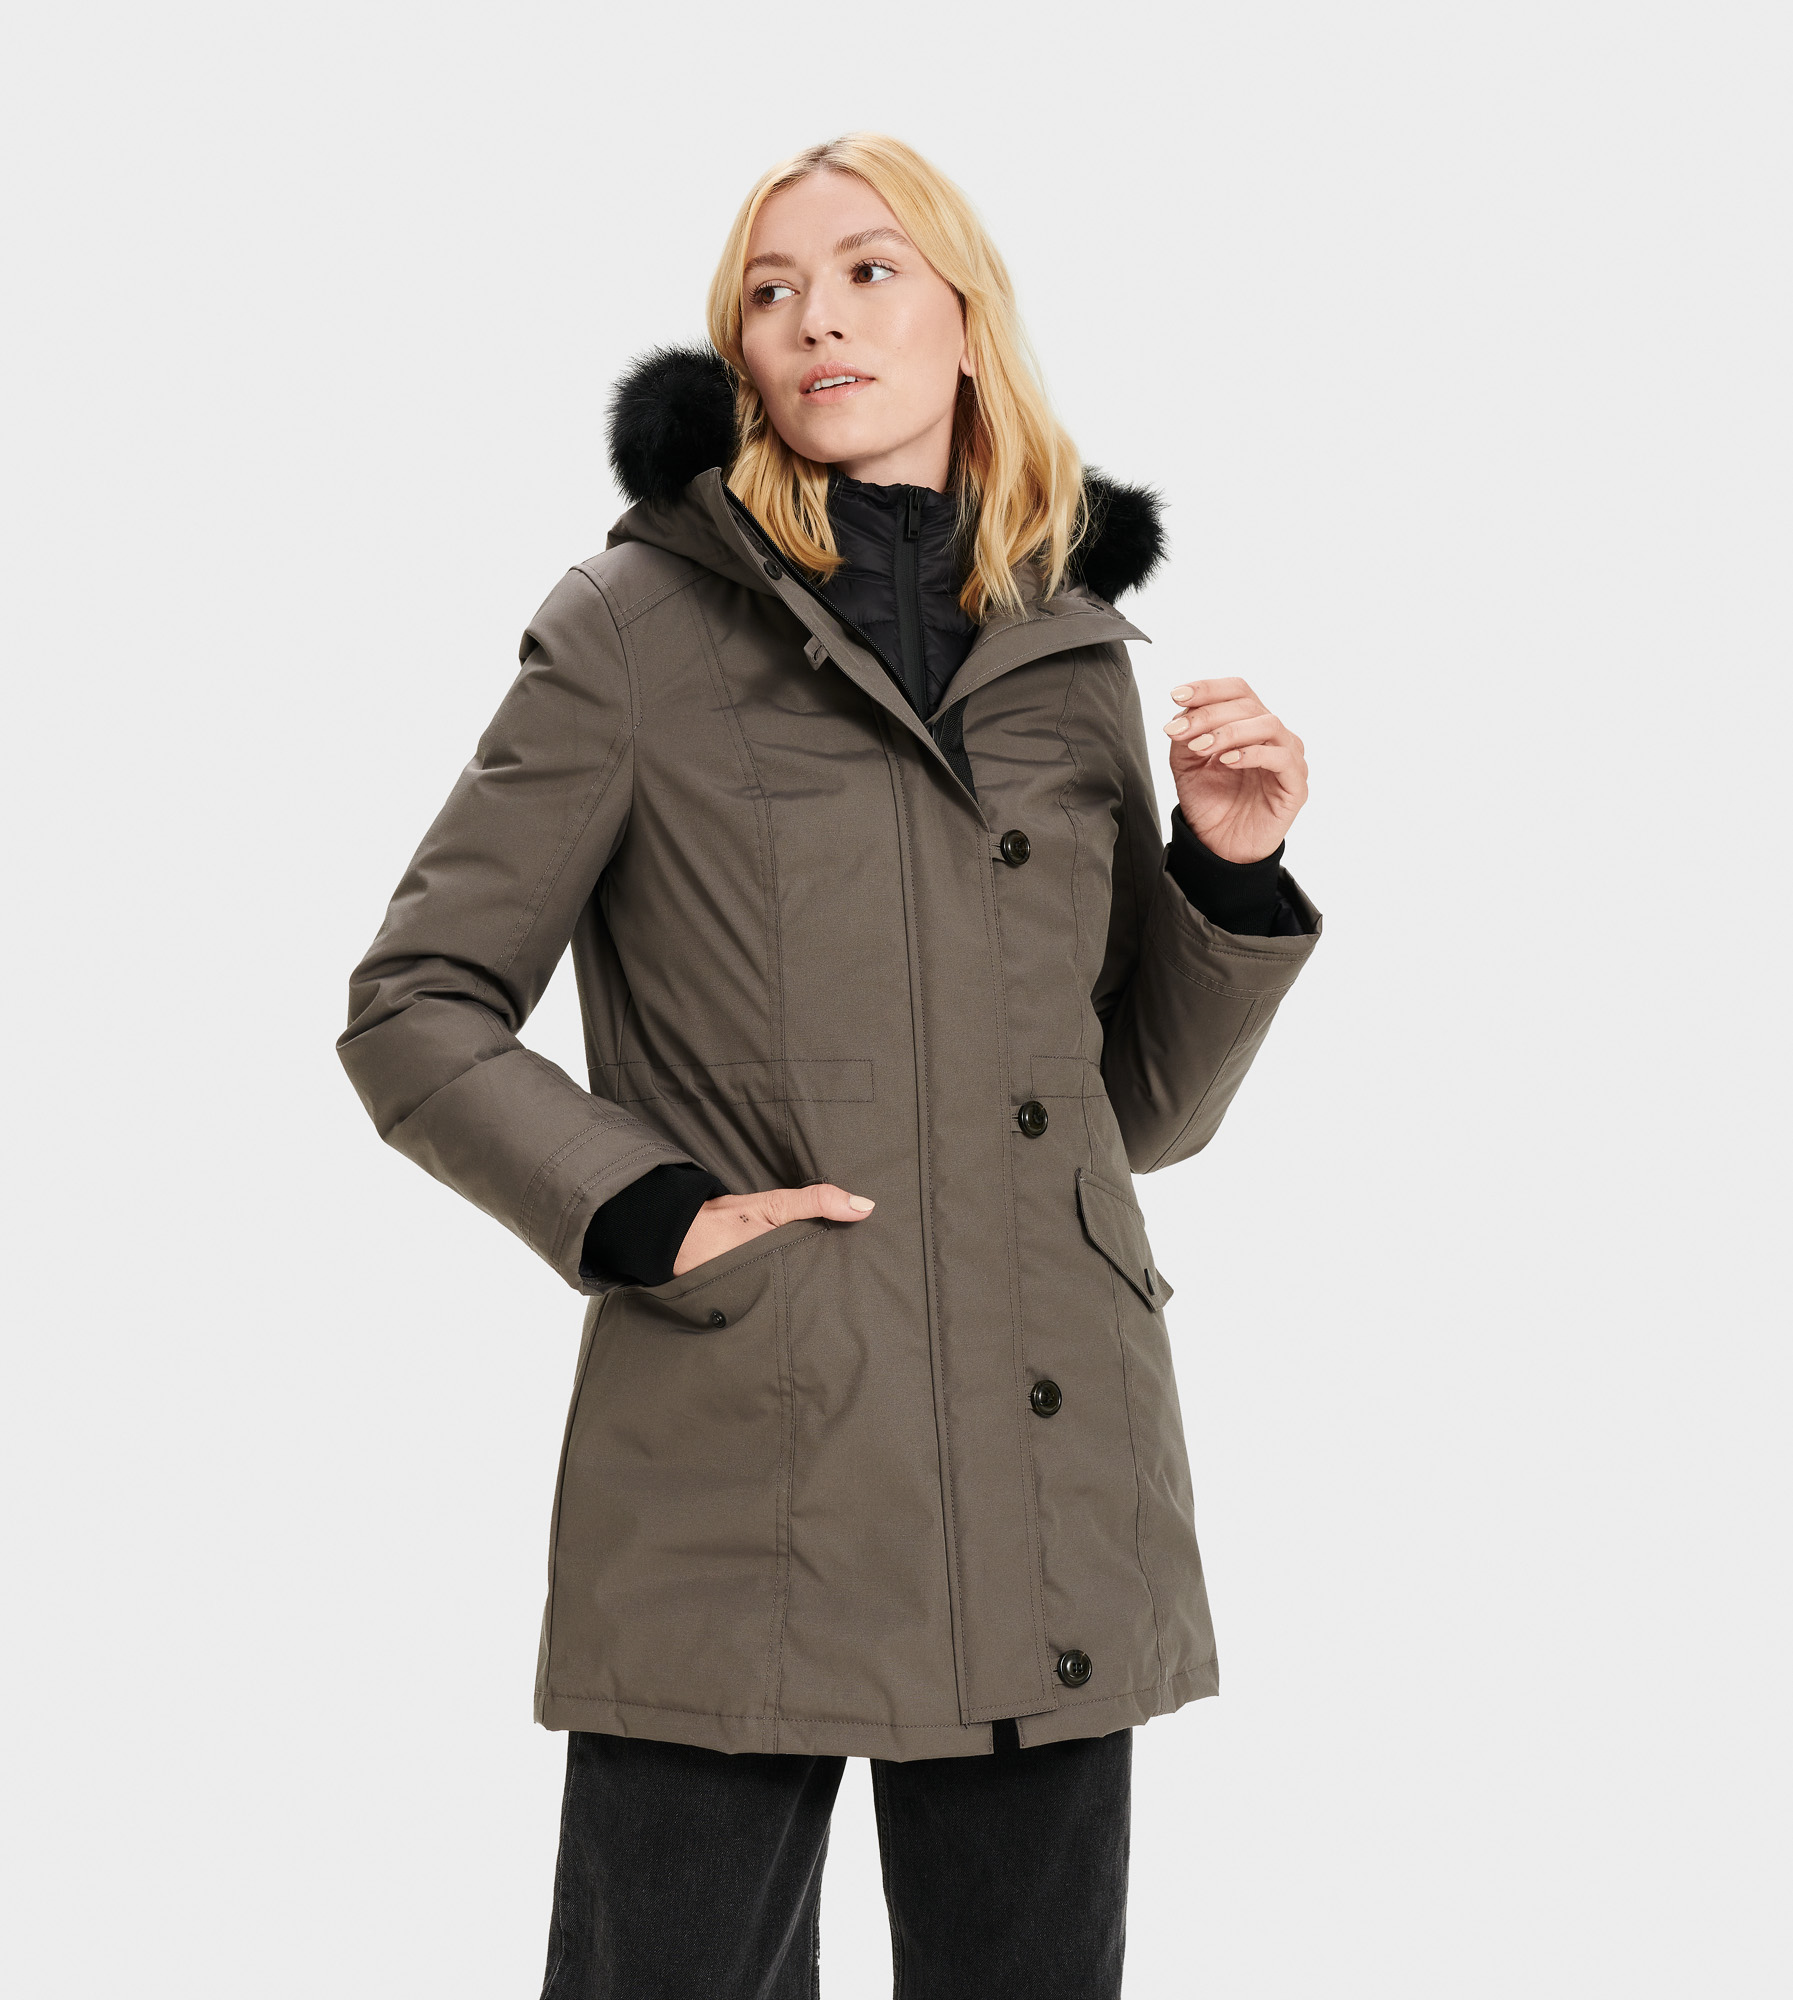 UGG Women's Adirondack Parka Sheepskin in Dark Grey, Size L Our most serious cold-weather coat, the Adirondack parka is made for temperatures as low as -31.4C (-24.52 F). Incorporating waterproof material and warming down, it also features a detachable vest that can be worn with the jacket, or by itself. With silky Toscana sheepskin trim and a cinched waist, you can stay stylish in any weather. Down-filled, waterproof tech parka with detachable nylon down vest. Waterproof Woven Shell: 85% Polyester, 15% Cotton. AATCC127 Waterproof tested. Temperature rated at -31.4° Celsius. Fleece pocket linings. Removable Toscana fur hood trim. Internal cell phone pocket. 32  center back length. Removable down vest liner: 24  center back length. Dry clean only. UGG Women's Adirondack Parka Sheepskin in Dark Grey, Size L